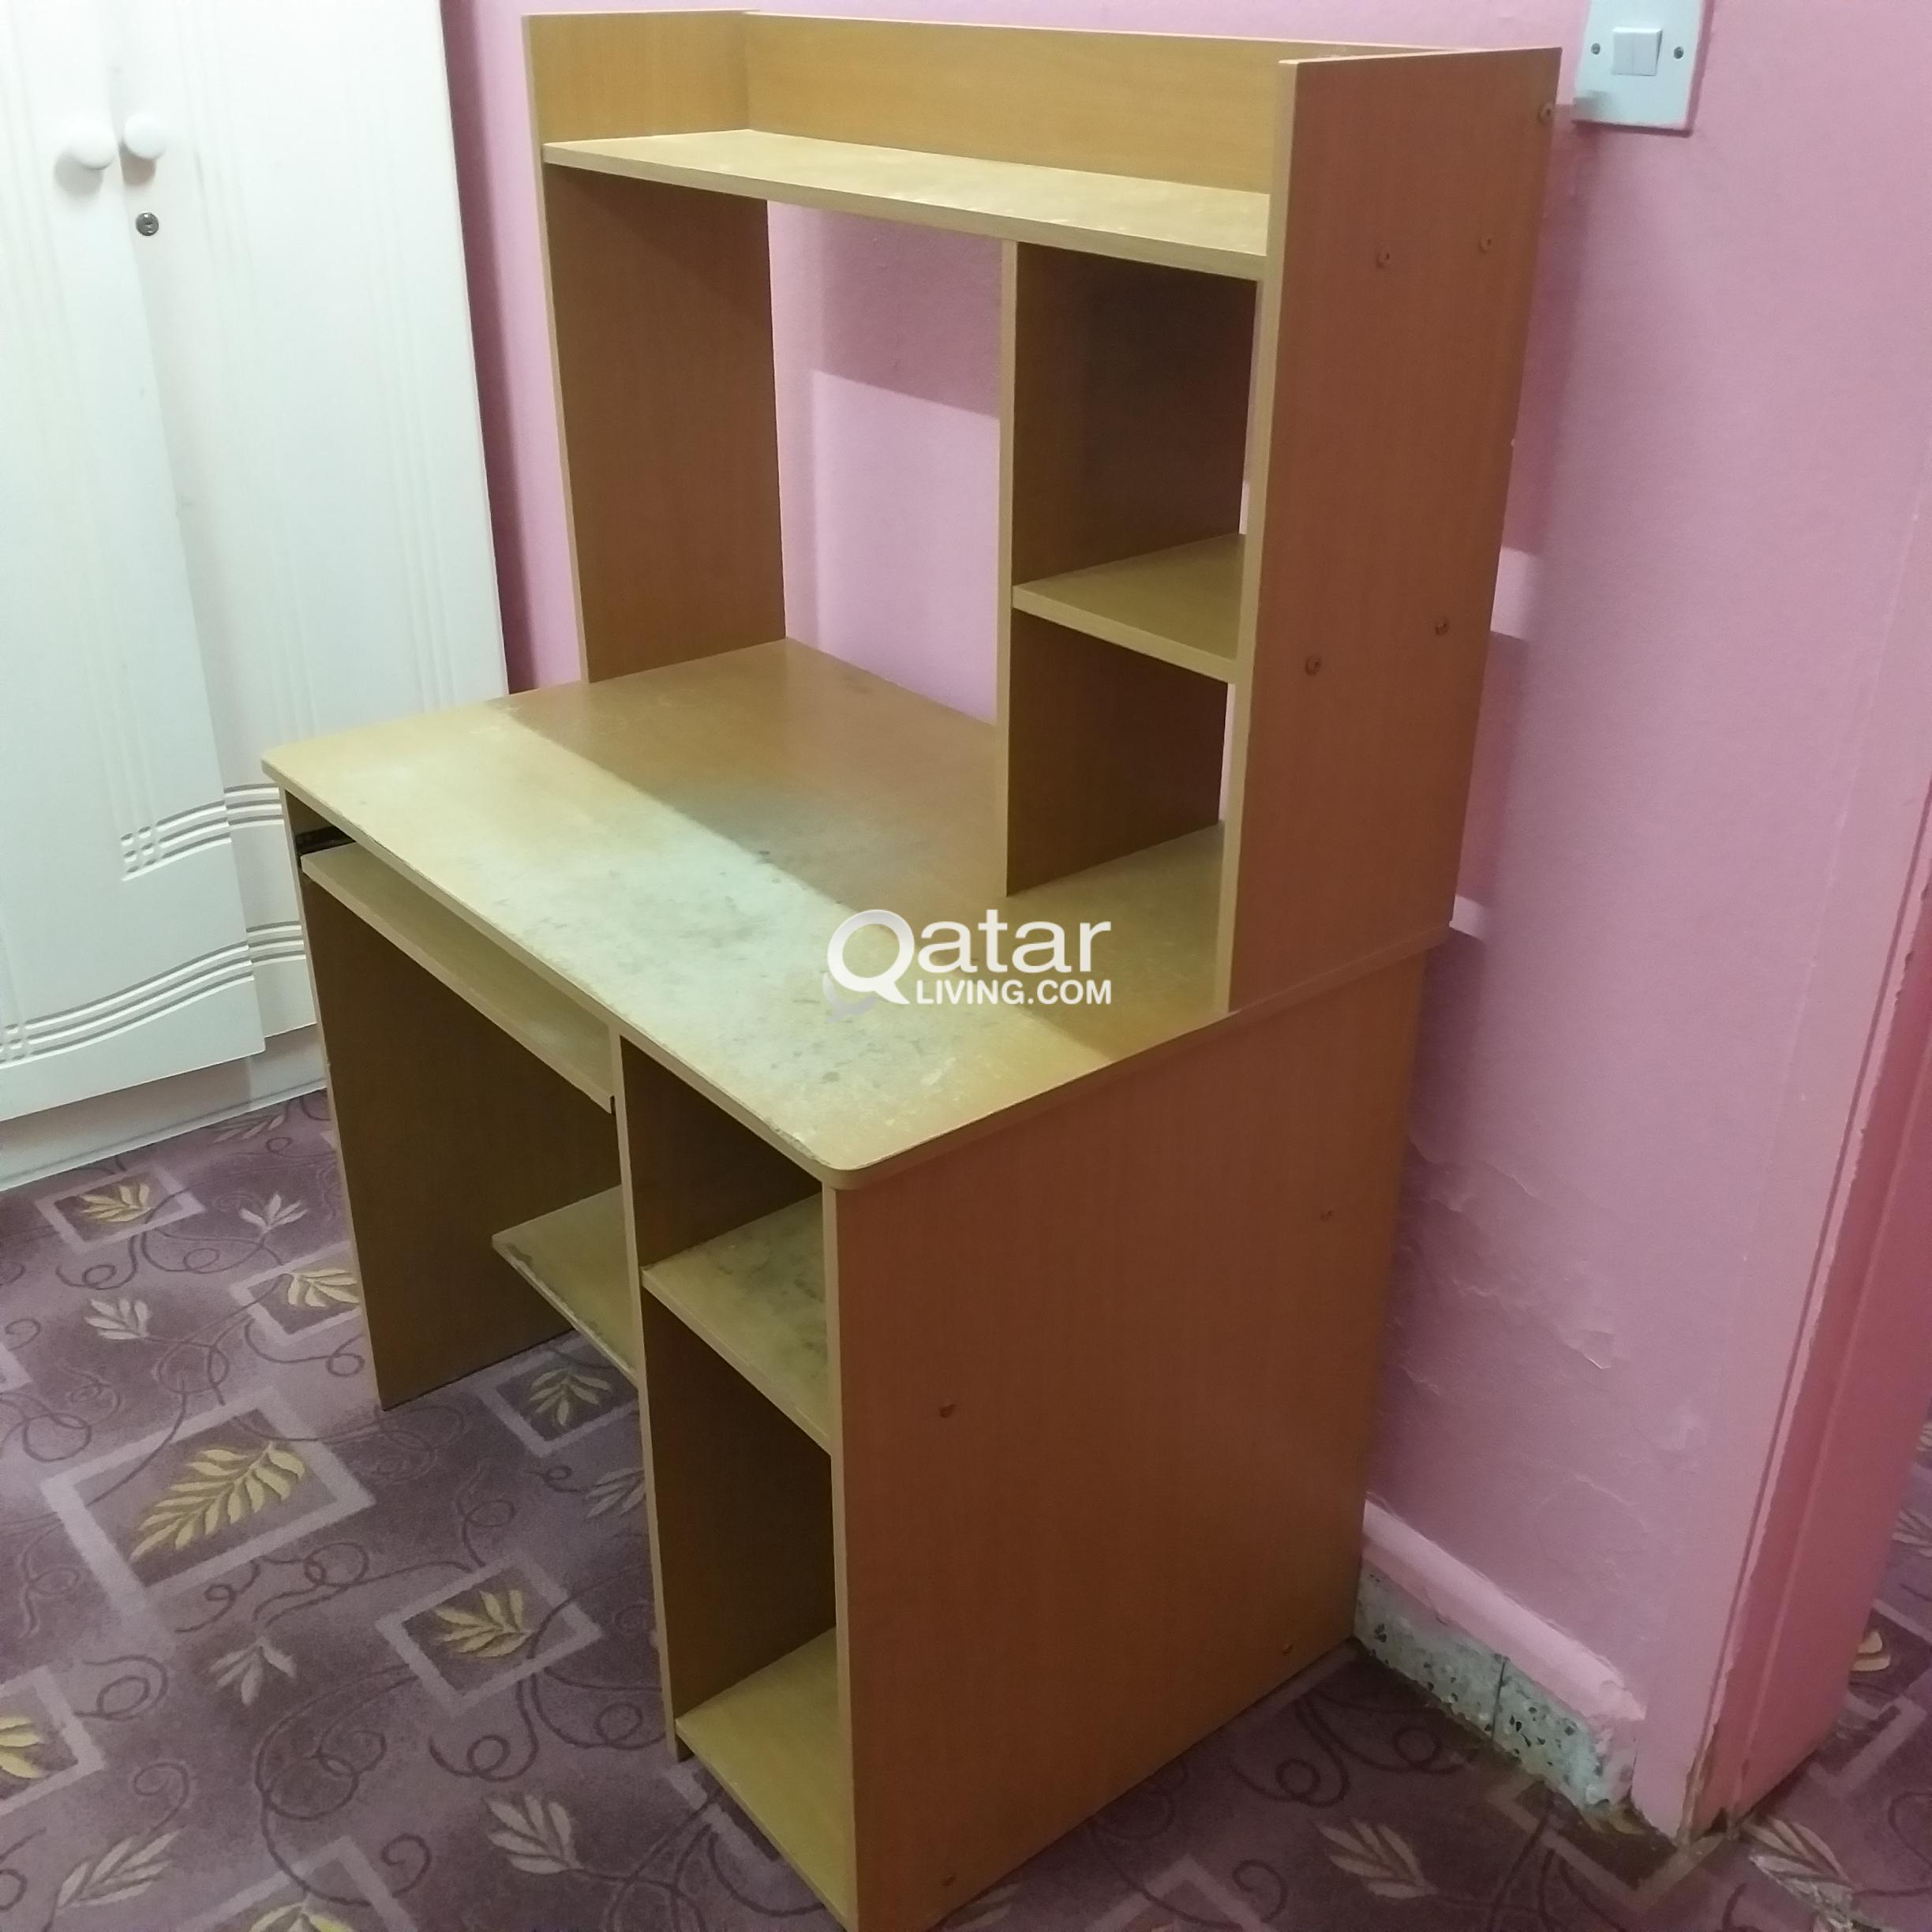 Magnificent Computer Table Big Size Lot Of Storage Space Qatar Living Download Free Architecture Designs Rallybritishbridgeorg